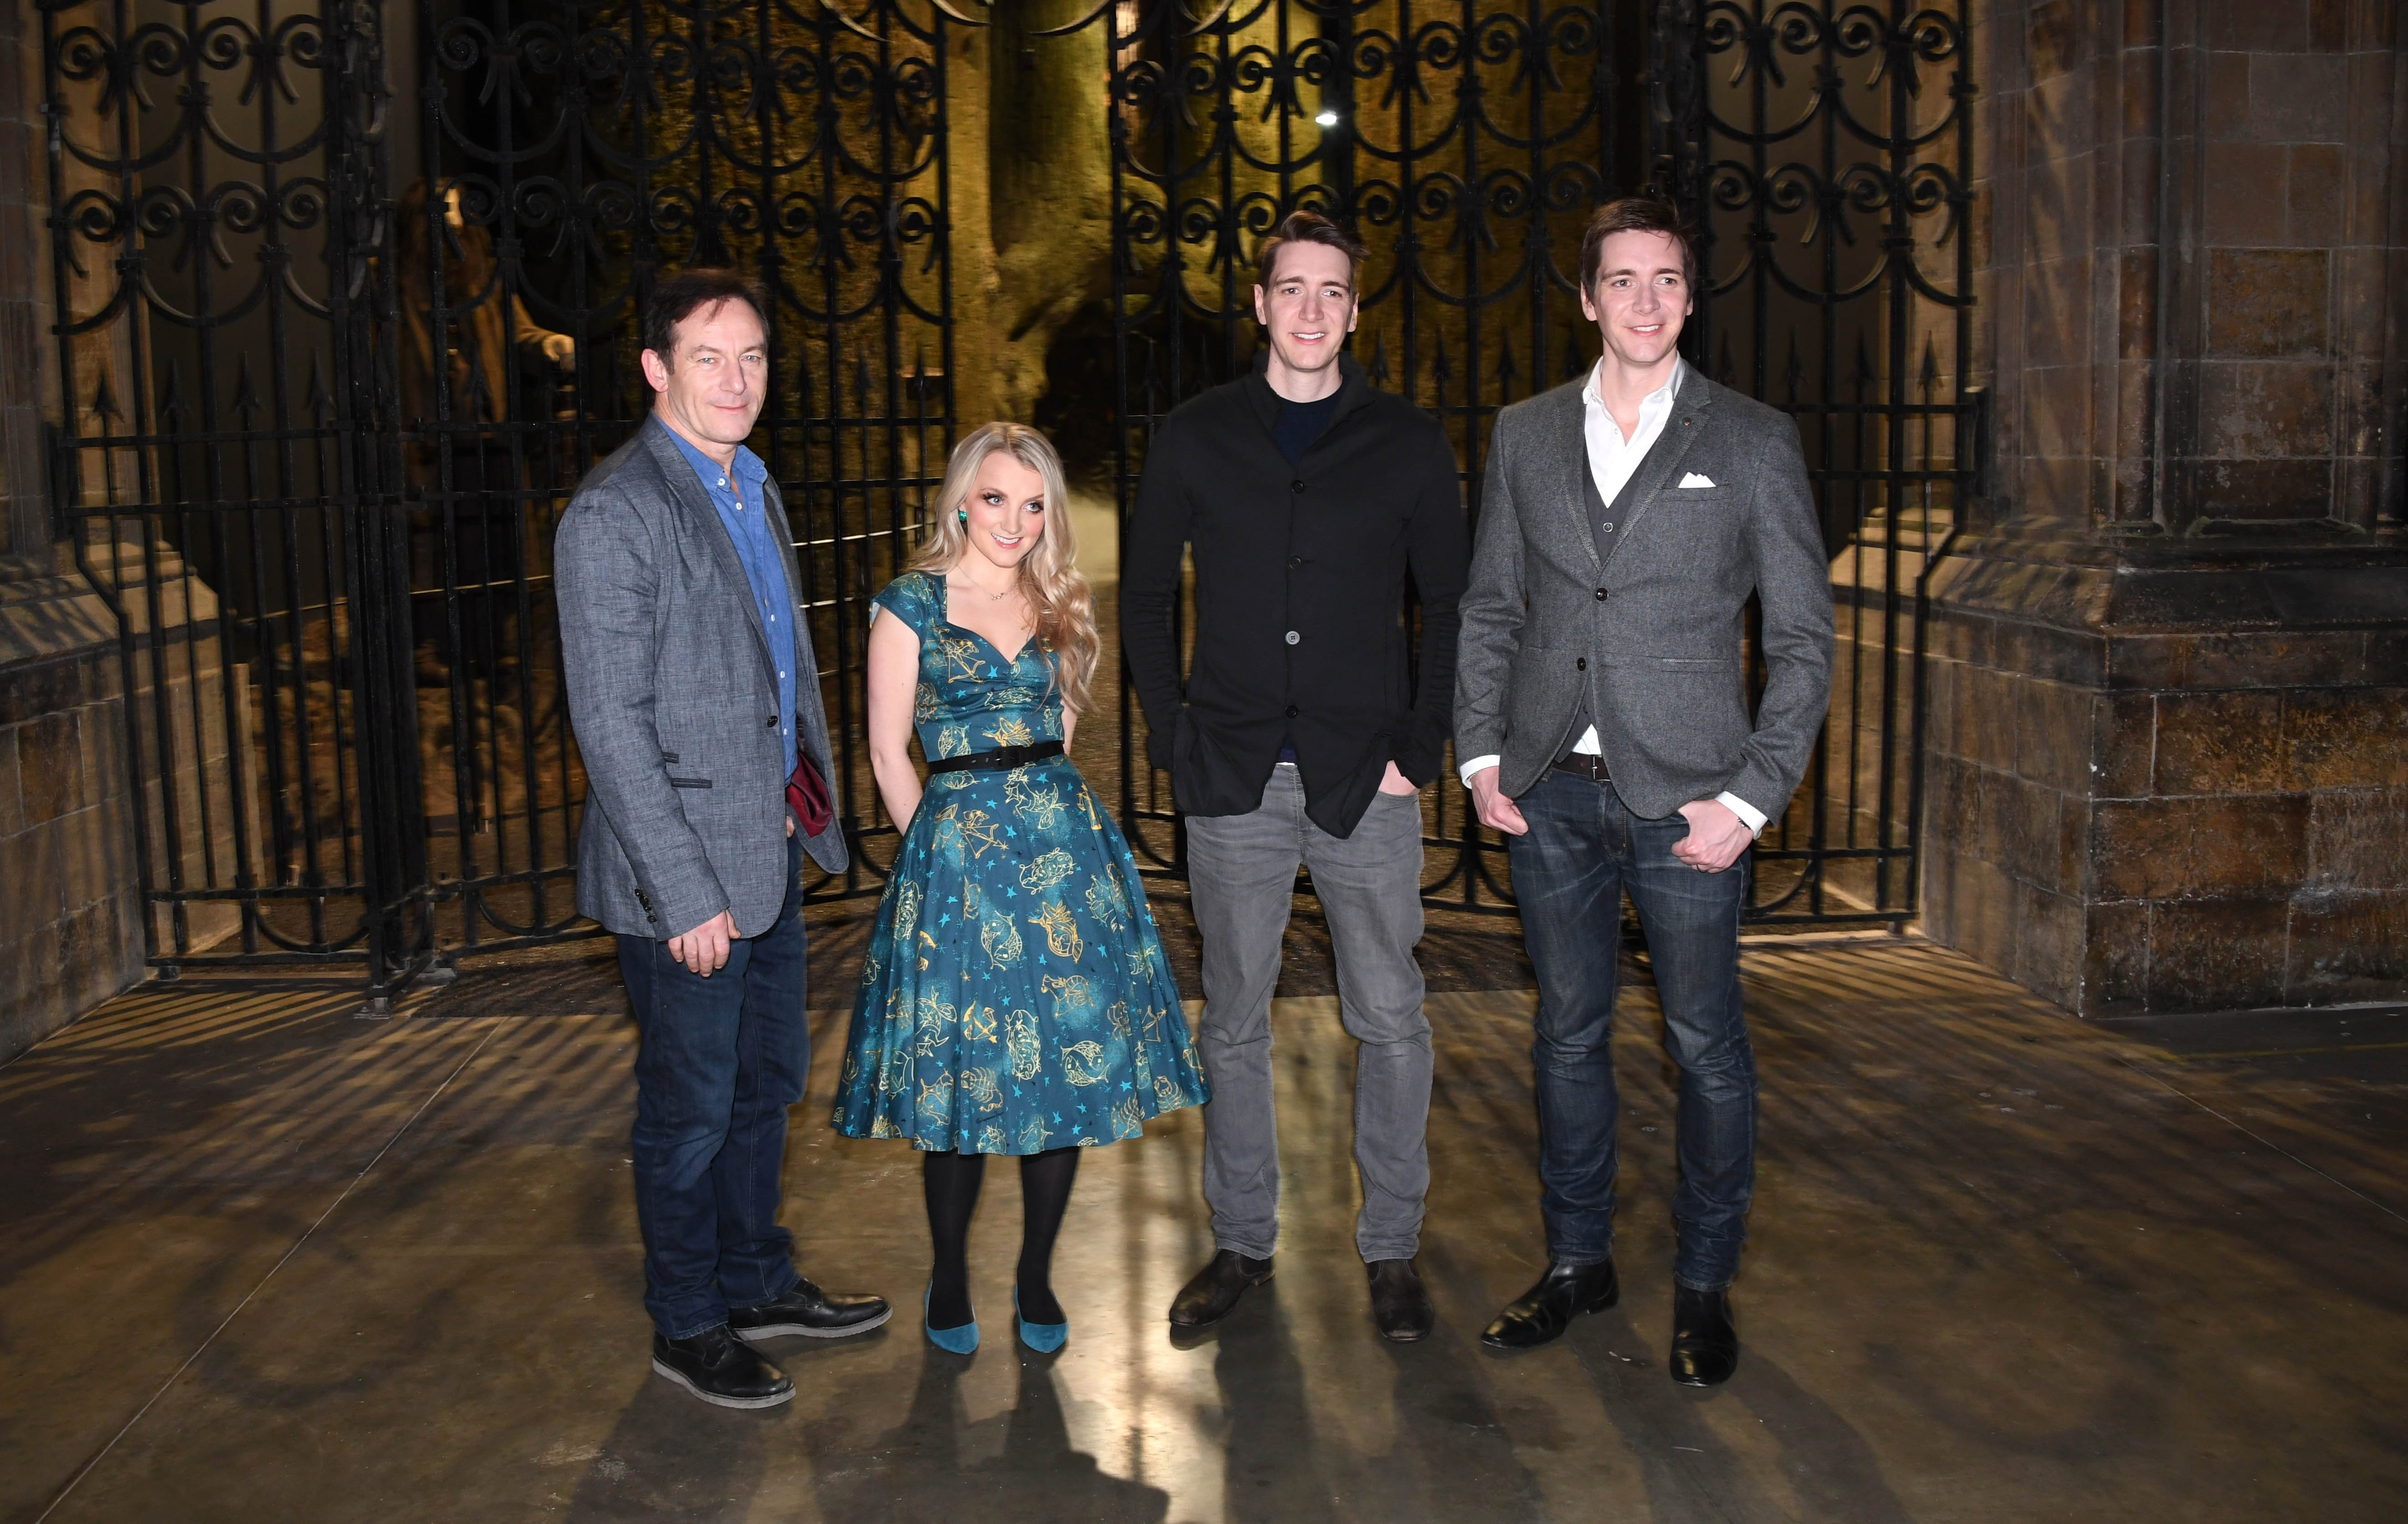 Jason Isaacs, Evanna Lynch, James Phelps and Oliver Phelps attend the First look at The Forbidden Forest, a new permanent expansion, opening 31st March, at Warner Bros. Studio Tour London - The Making of Harry Potter - on March 8, 2017 in Watford, England